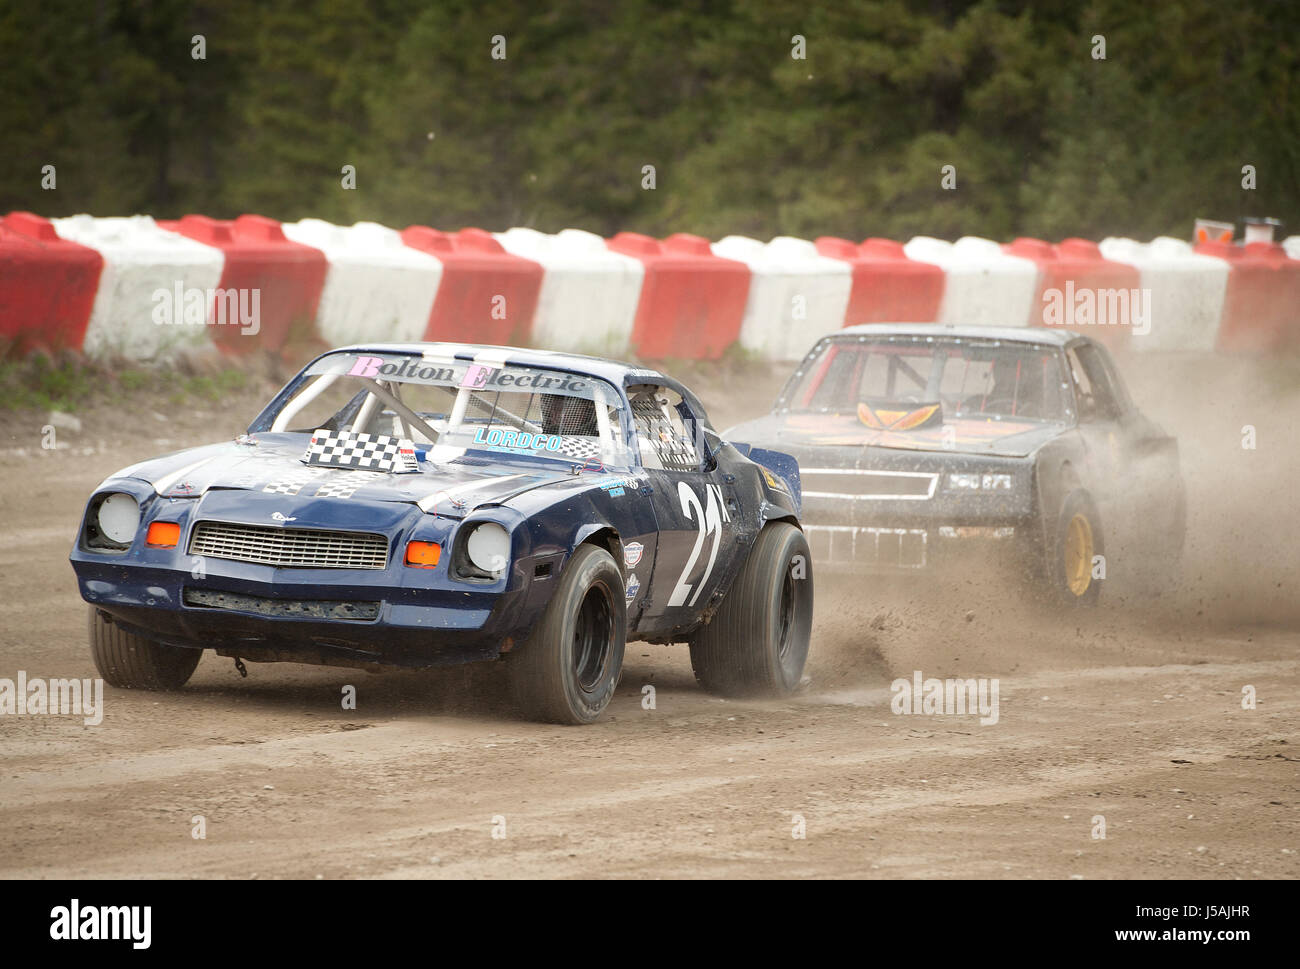 Stock Car Race Stock Photos Stock Car Race Stock Images Alamy